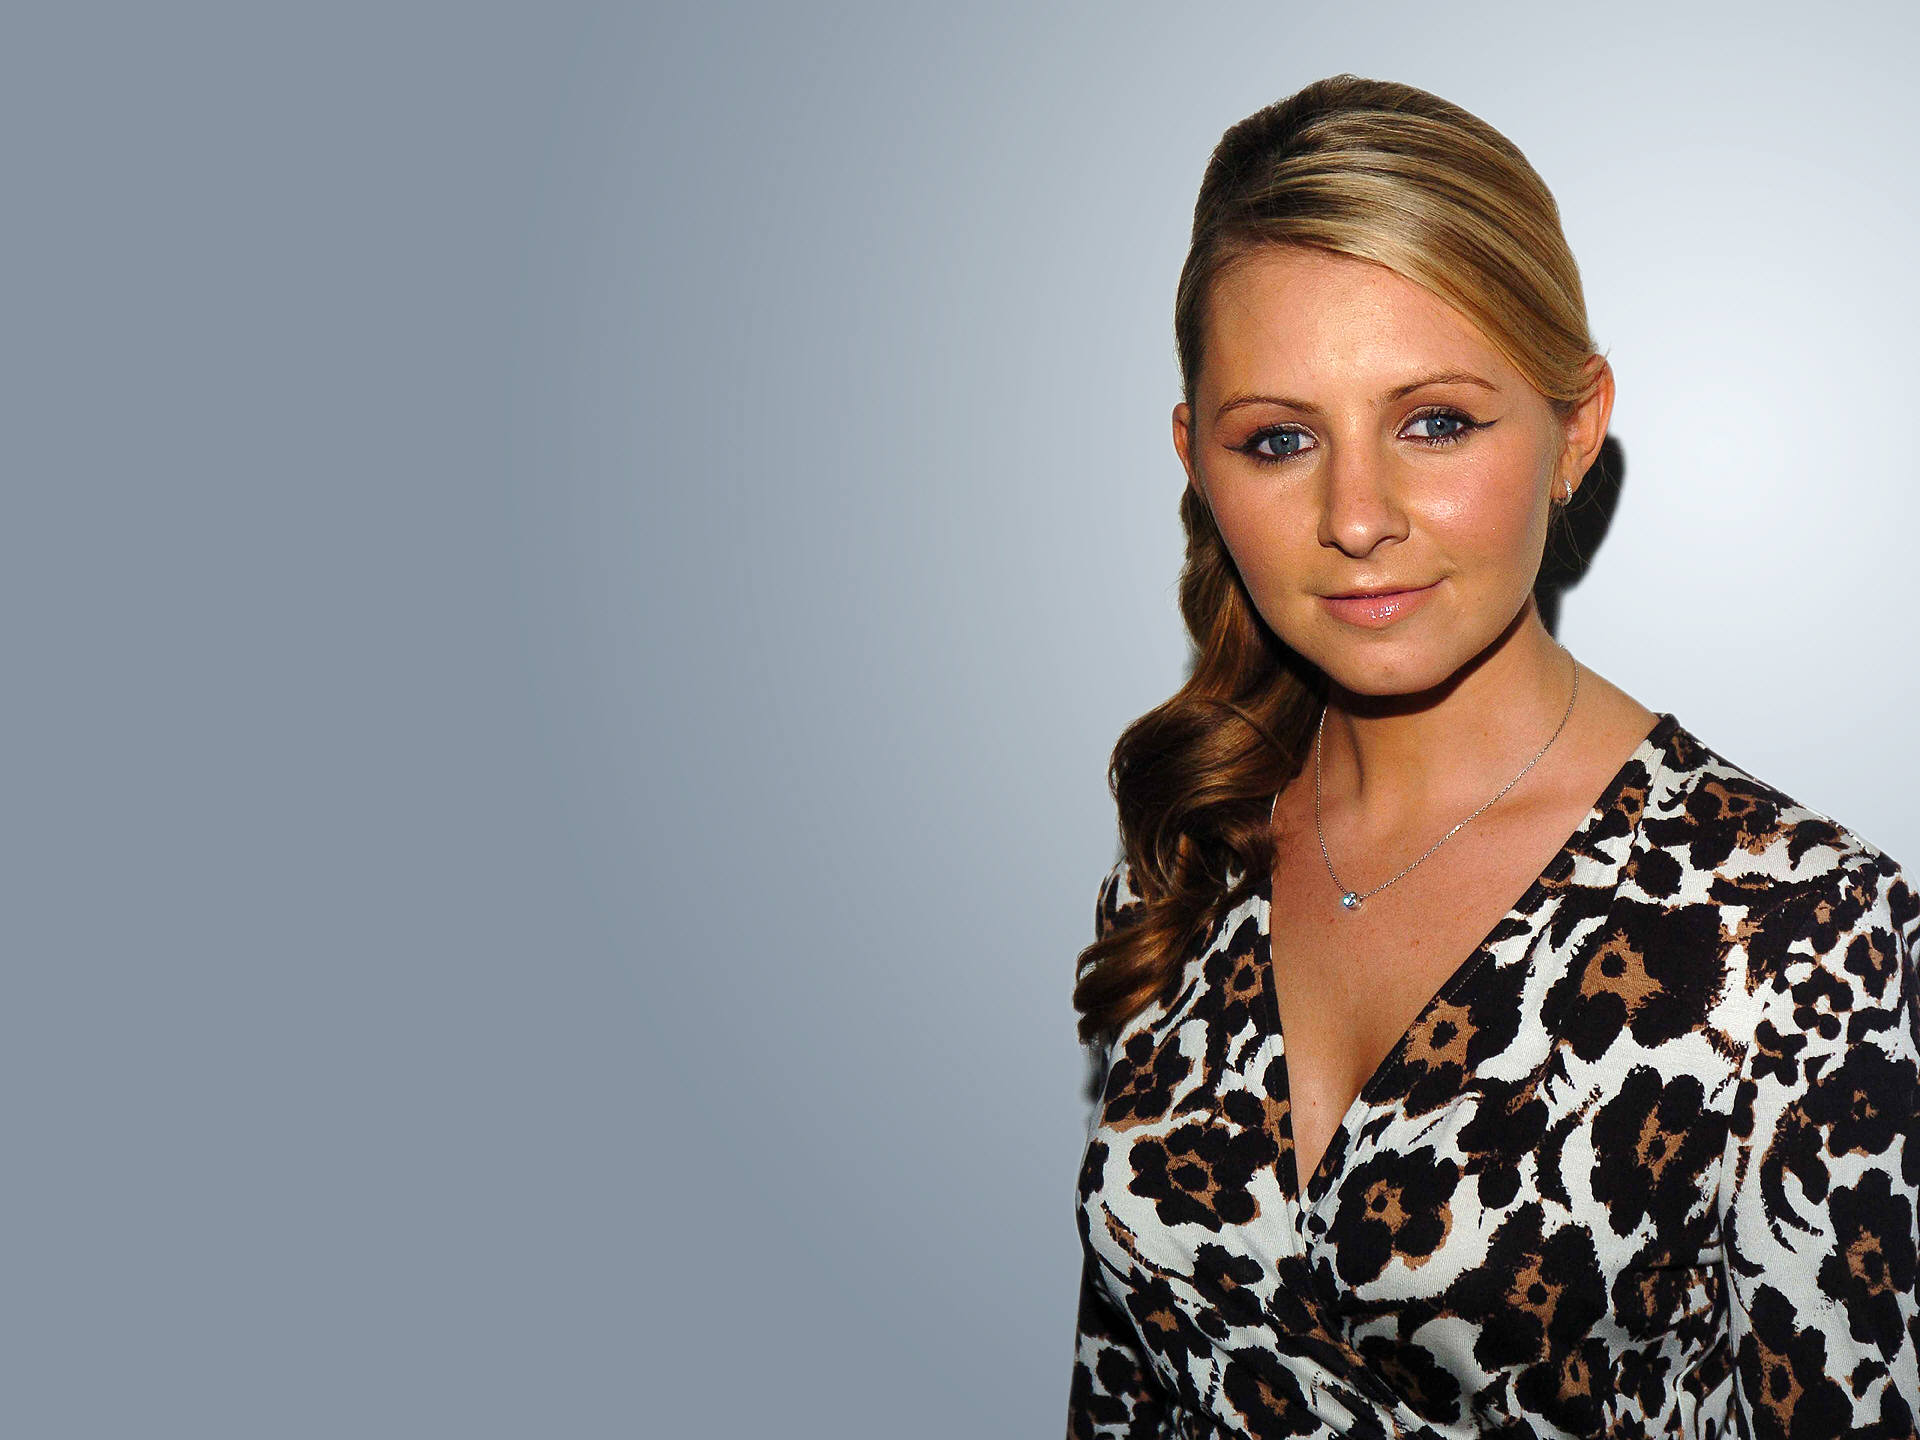 Beverley Mitchell Picture Image